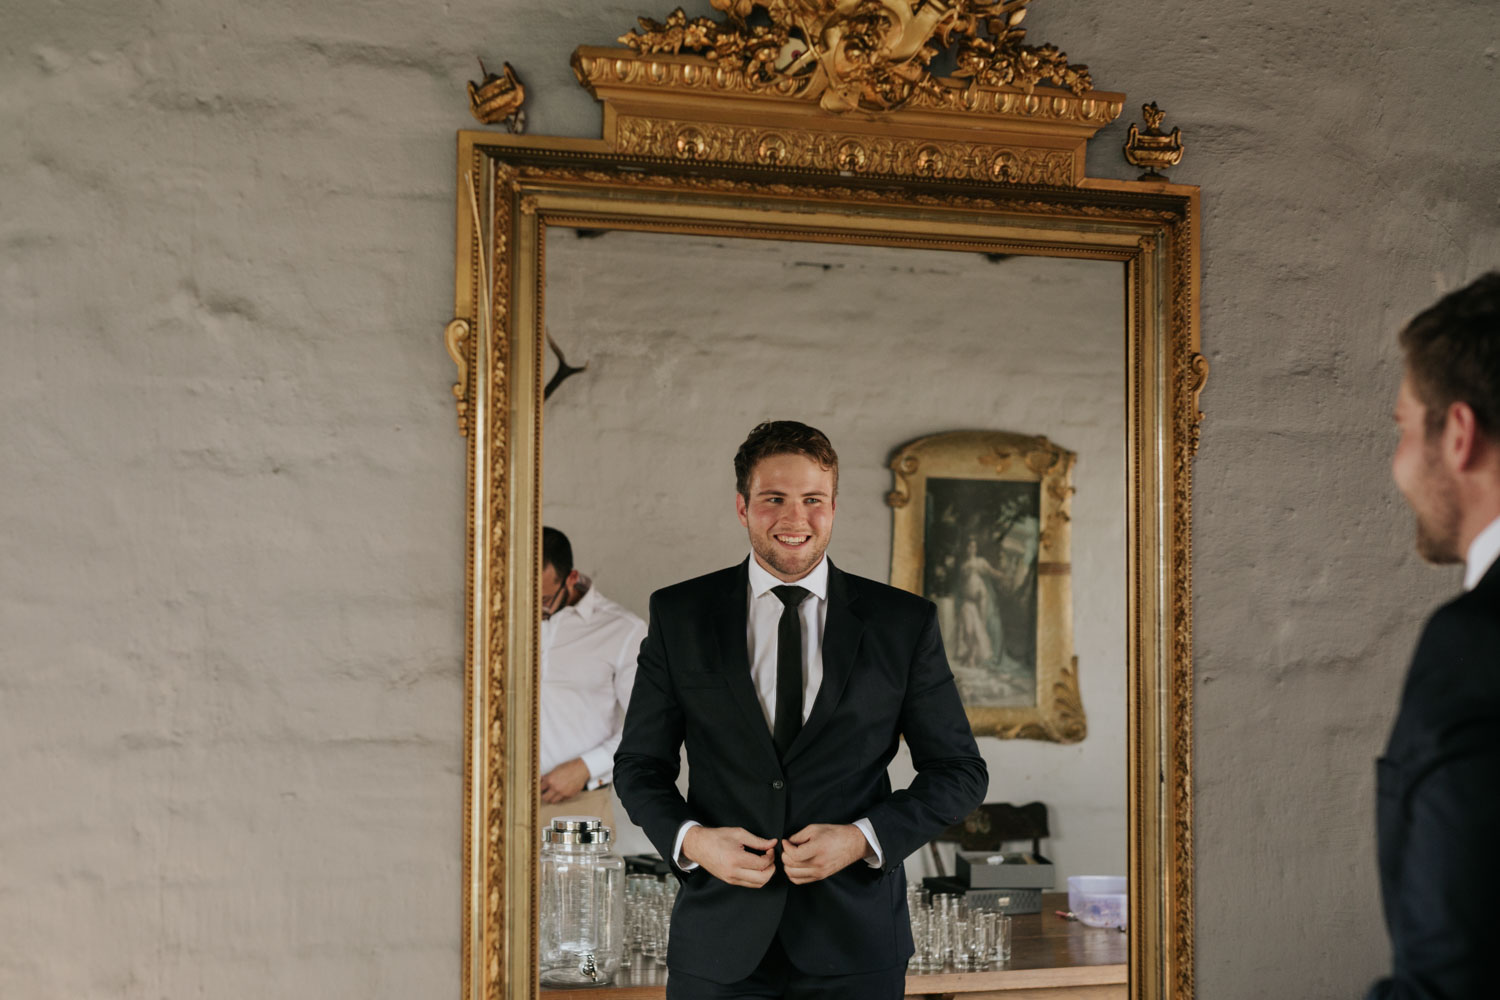 Groom Reflection In Mirror As He Puts On Black Suit At Interesting Vancouver Boutique Hotel